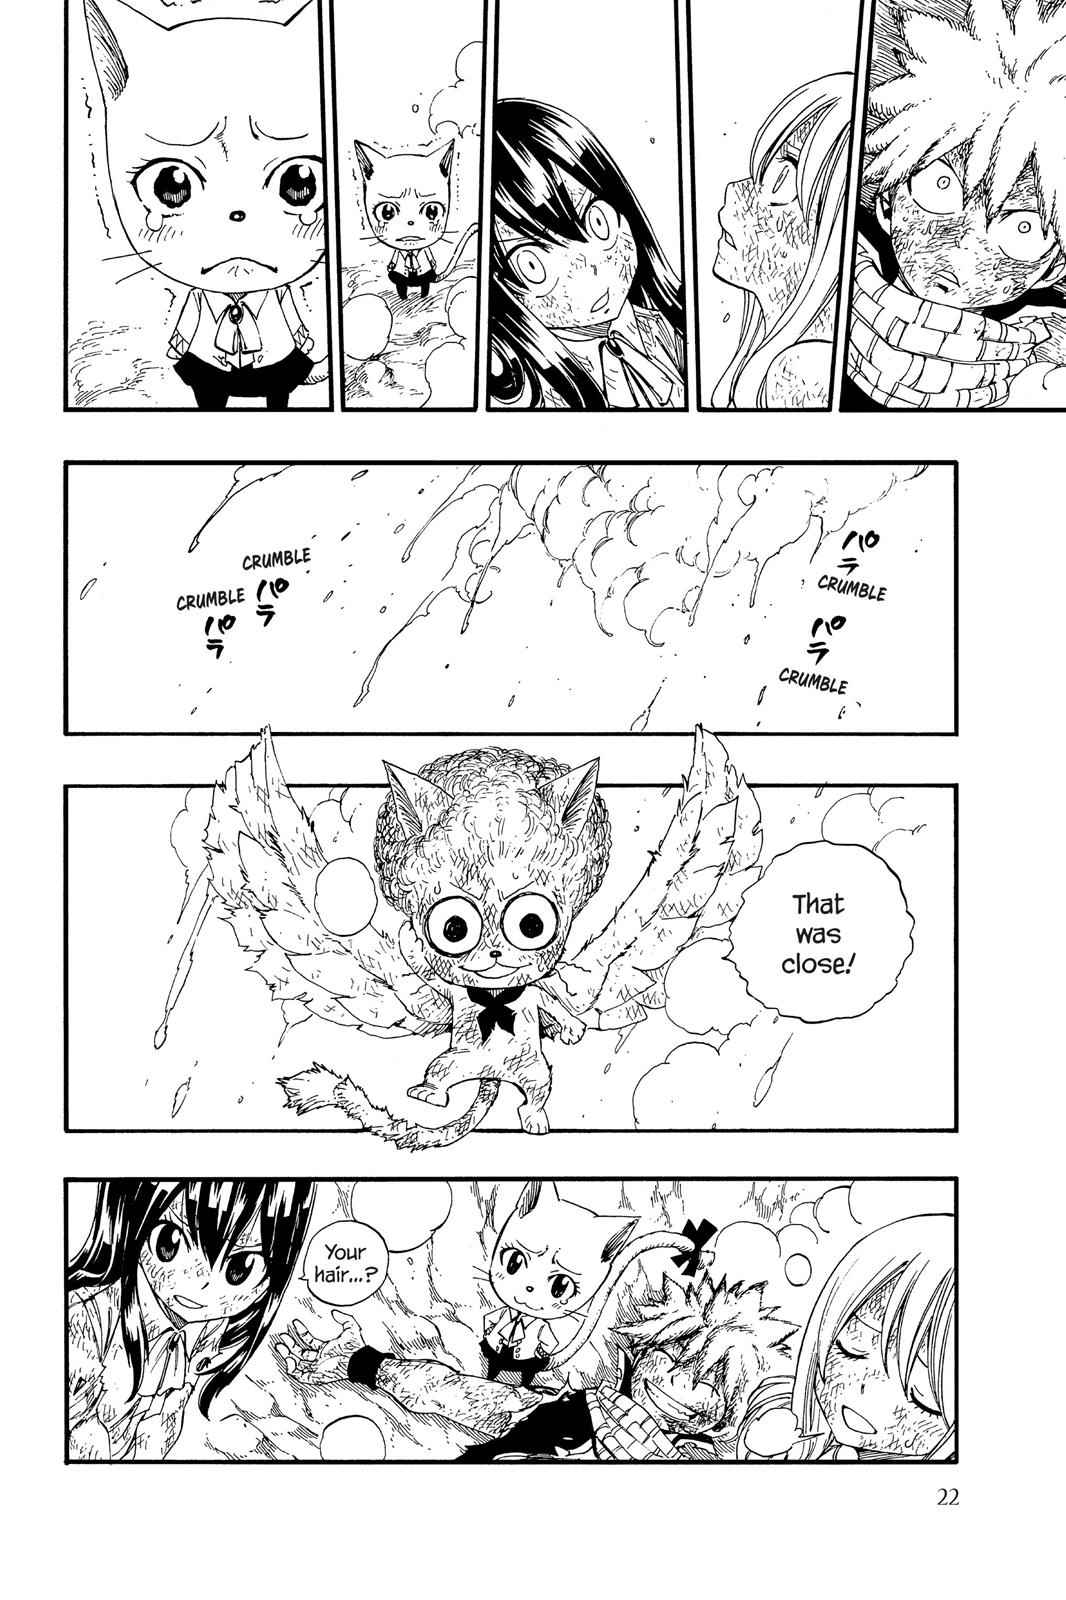 Fairy Tail Chapter 362 Page 23